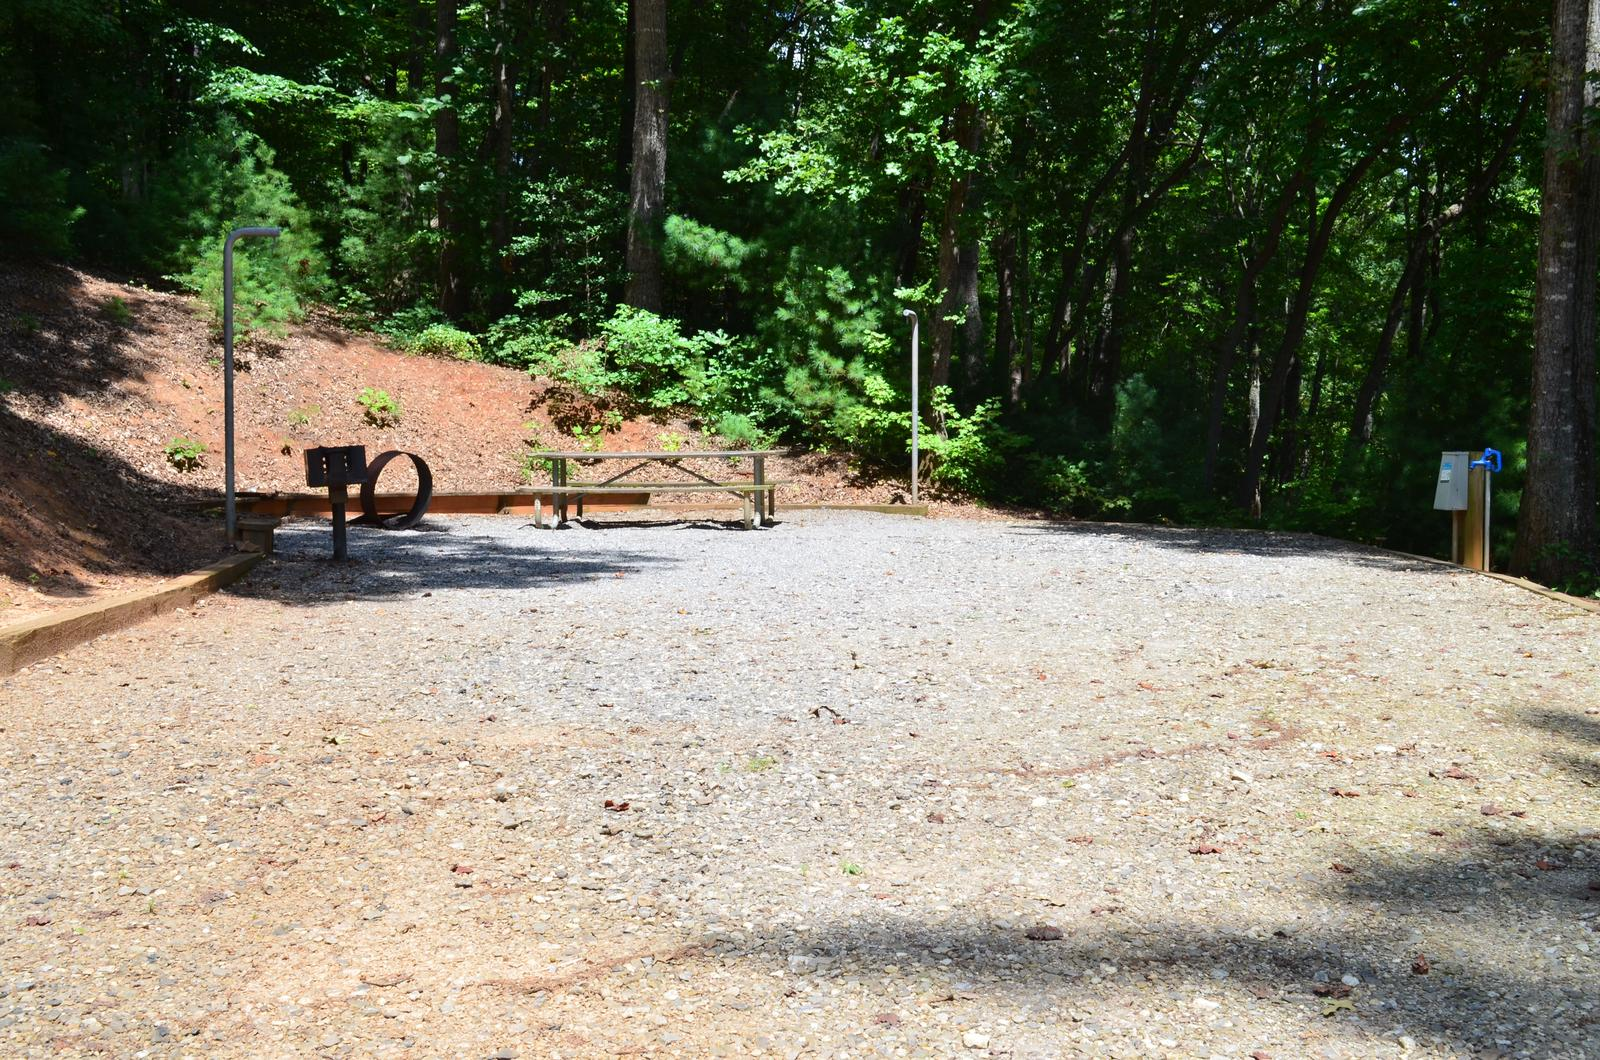 Gravel site with fire pit, table, grill, surrounded by trees Gravel site with fire pit, table, grill